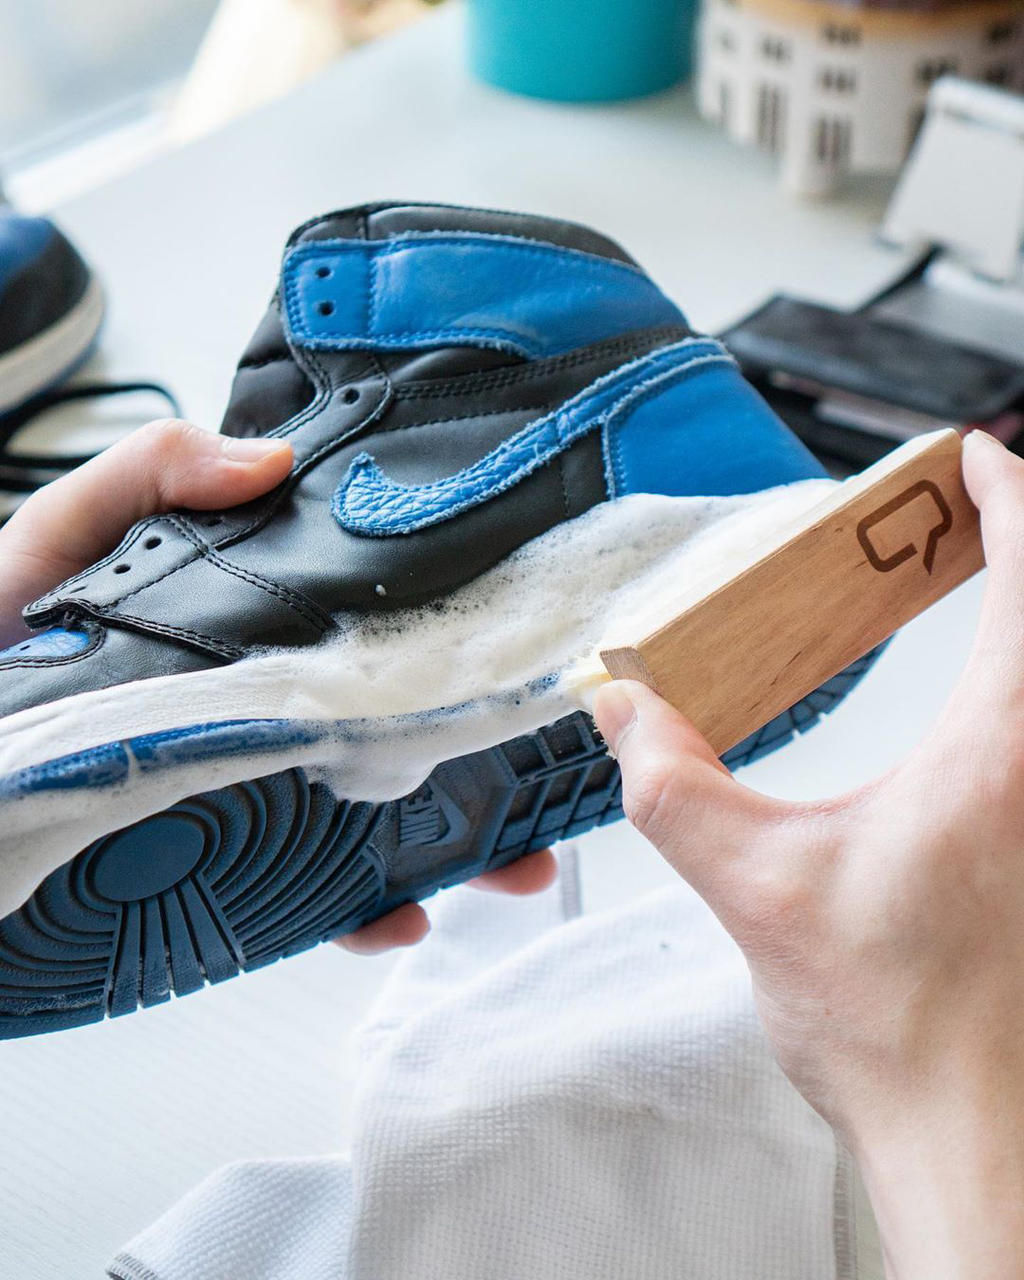 HOW TO KEEP YOUR SNEAKERS BOX-FRESH